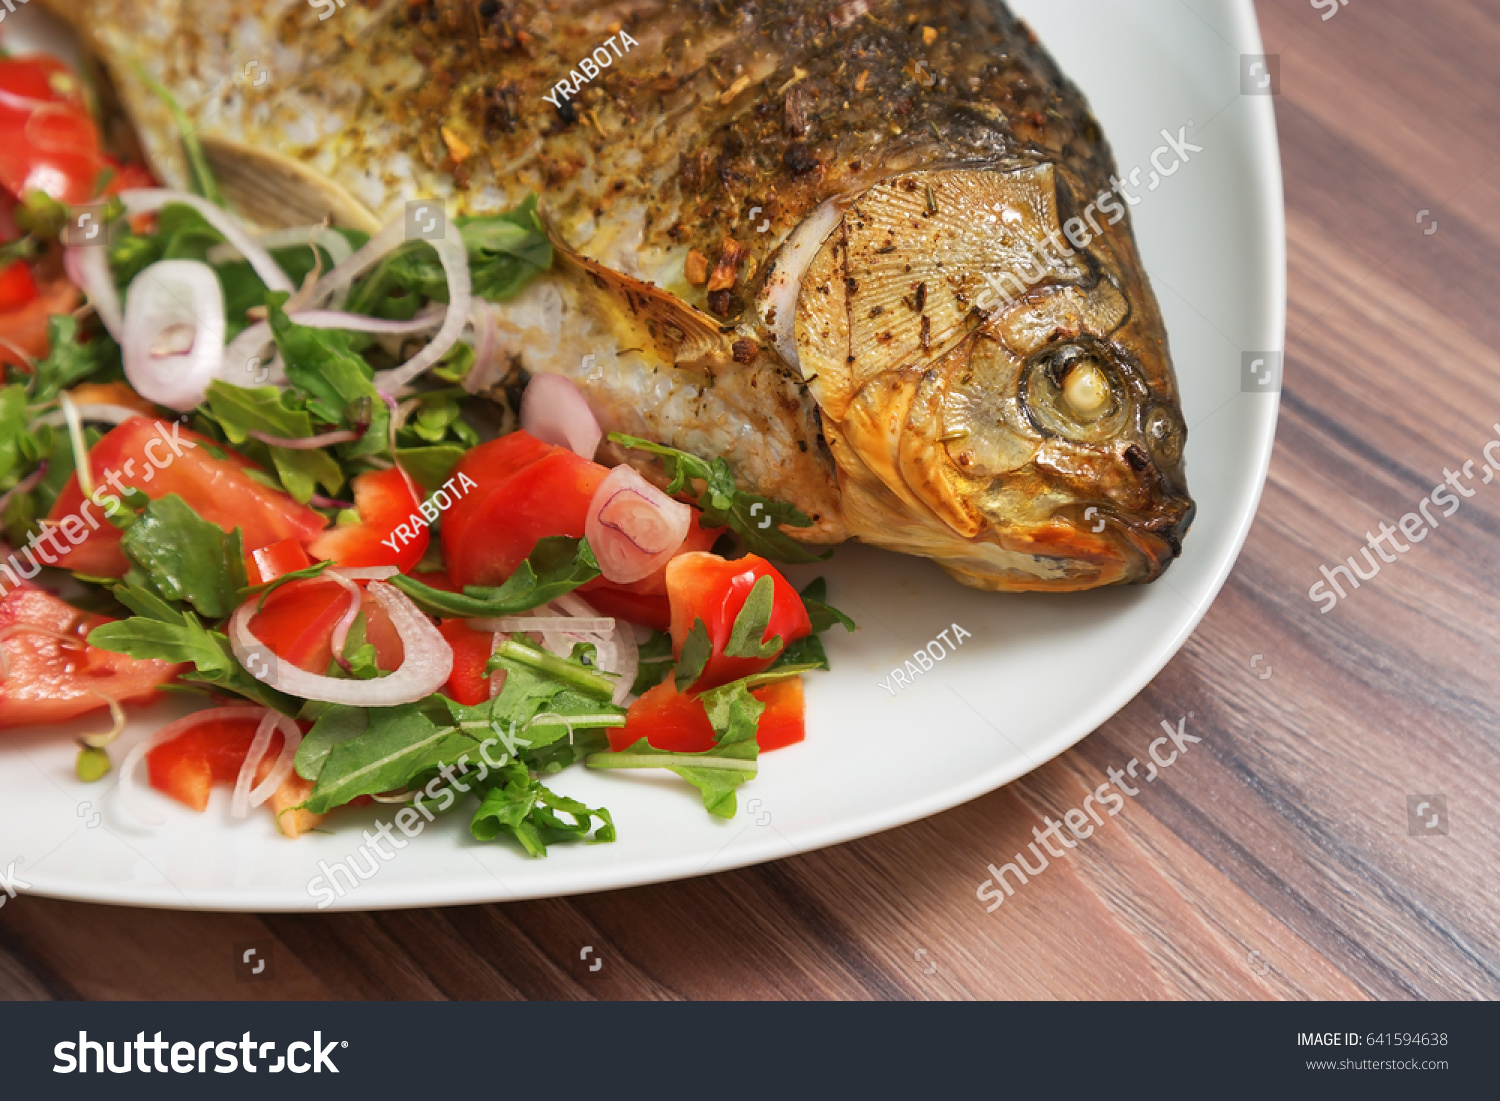 How to cook a crucian Carp roasted, baked, in sour cream - recipes, photos 47